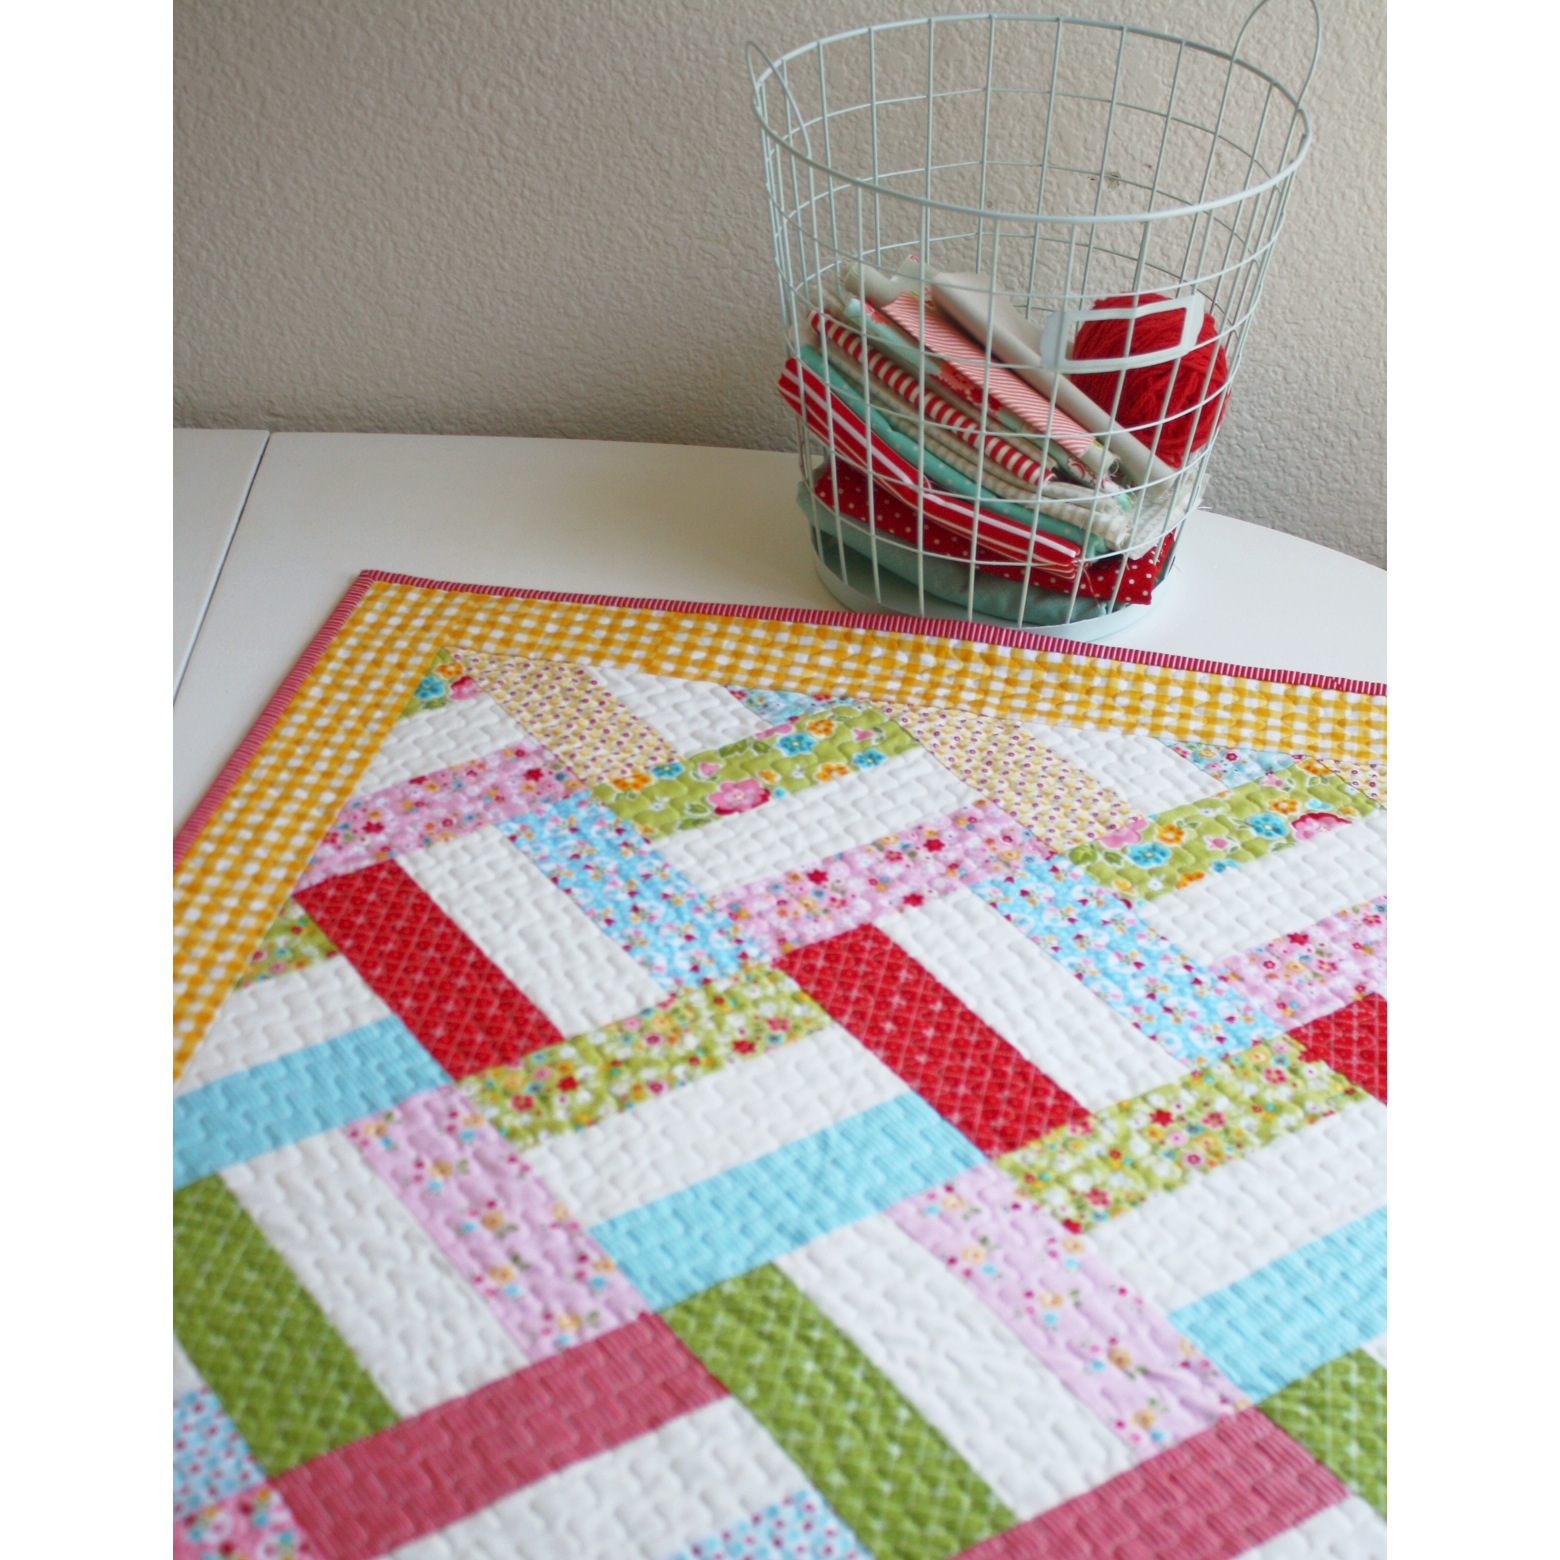 Free Strip Quilt Patterns Easy : Easy Strip Quilt Pattern from WoodberryWay... Quiltstory Bloglovin